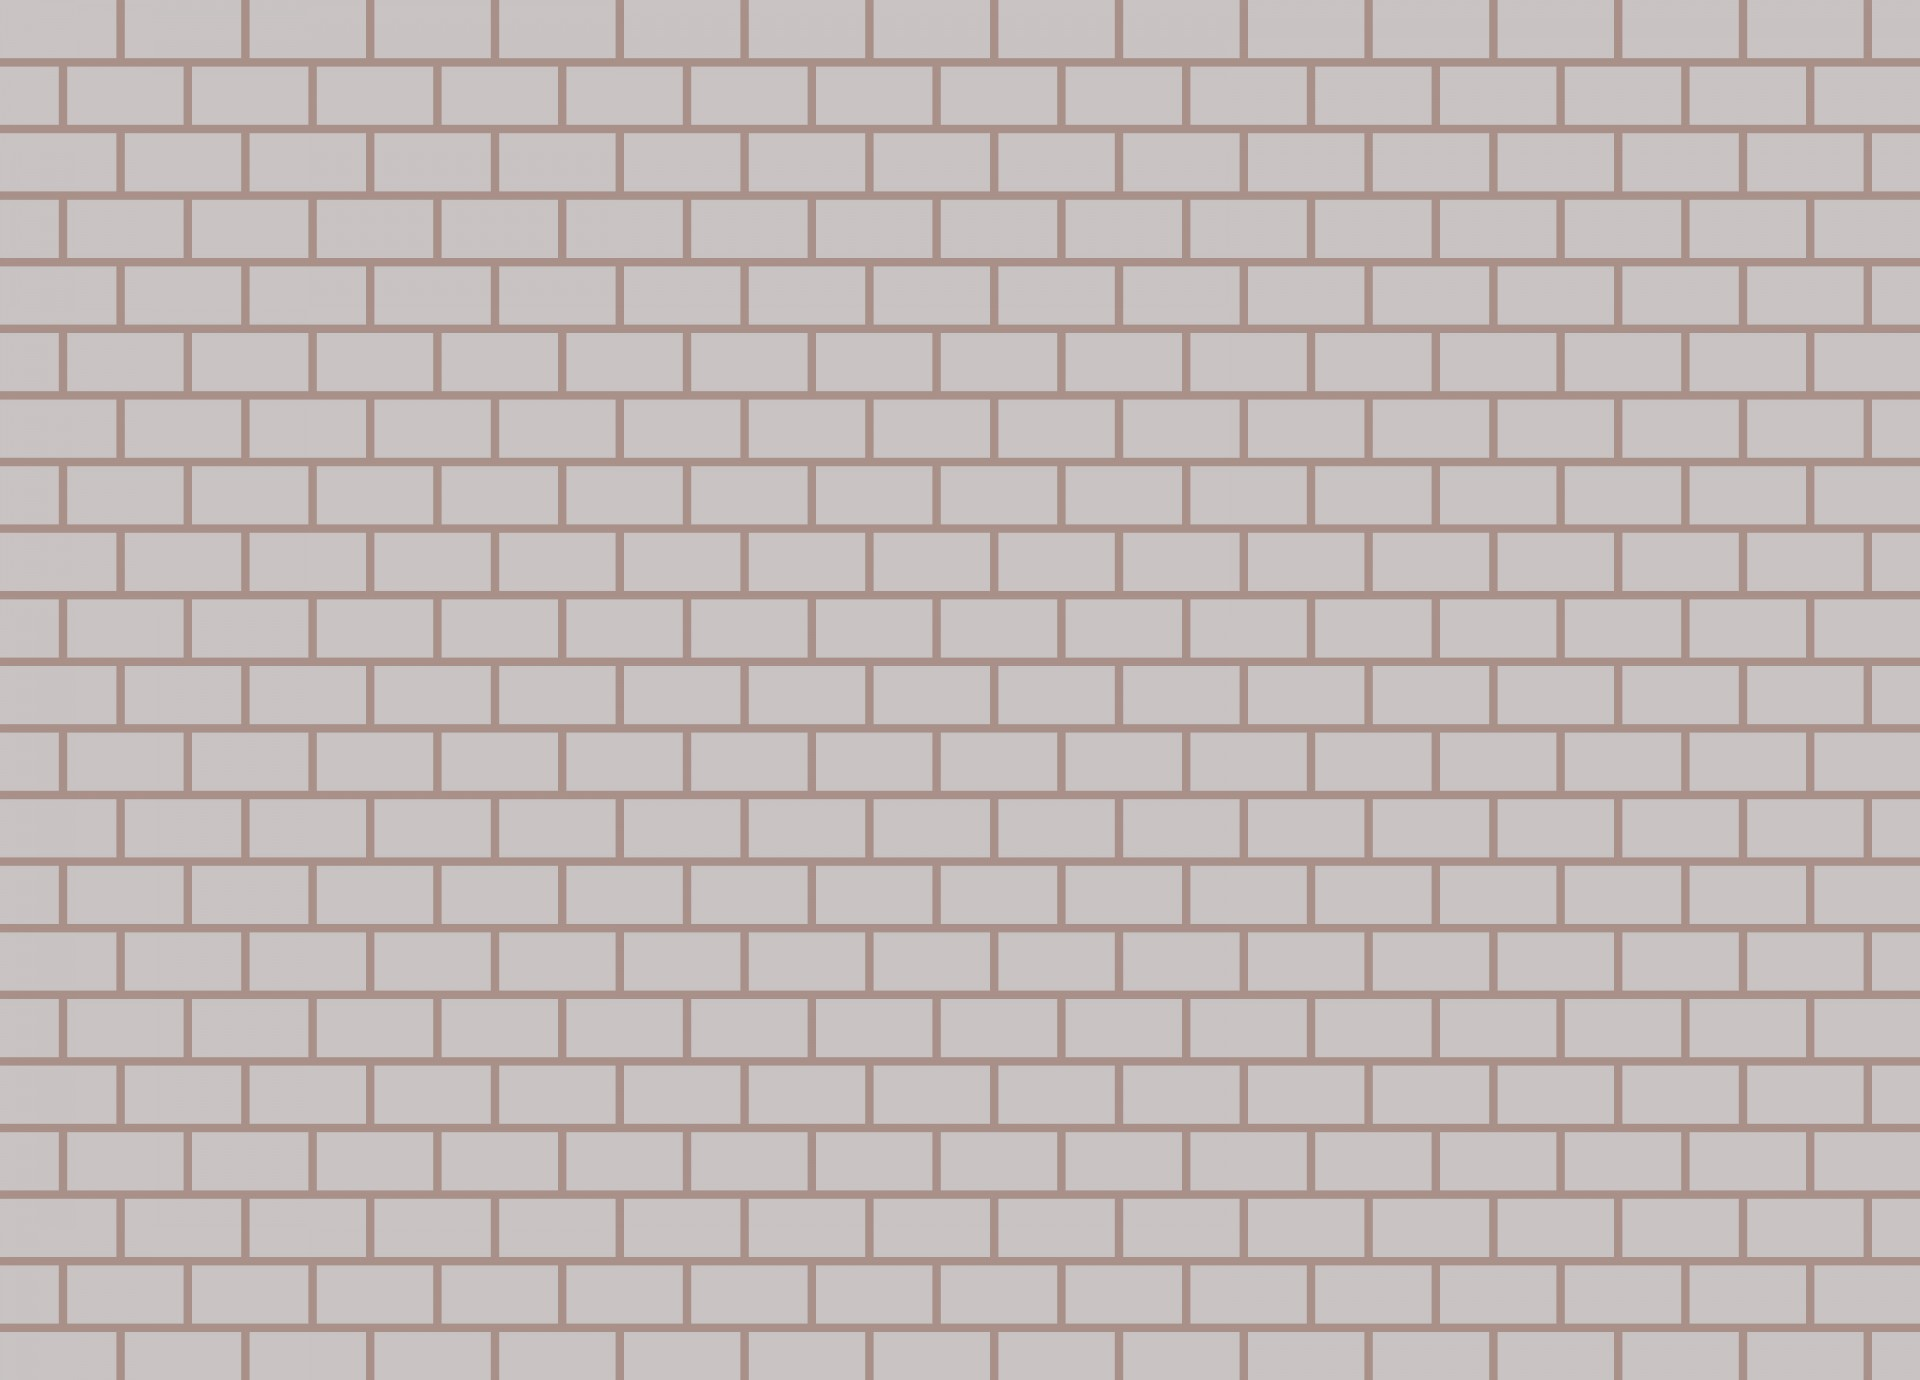 Wall clipart. White brick free stock